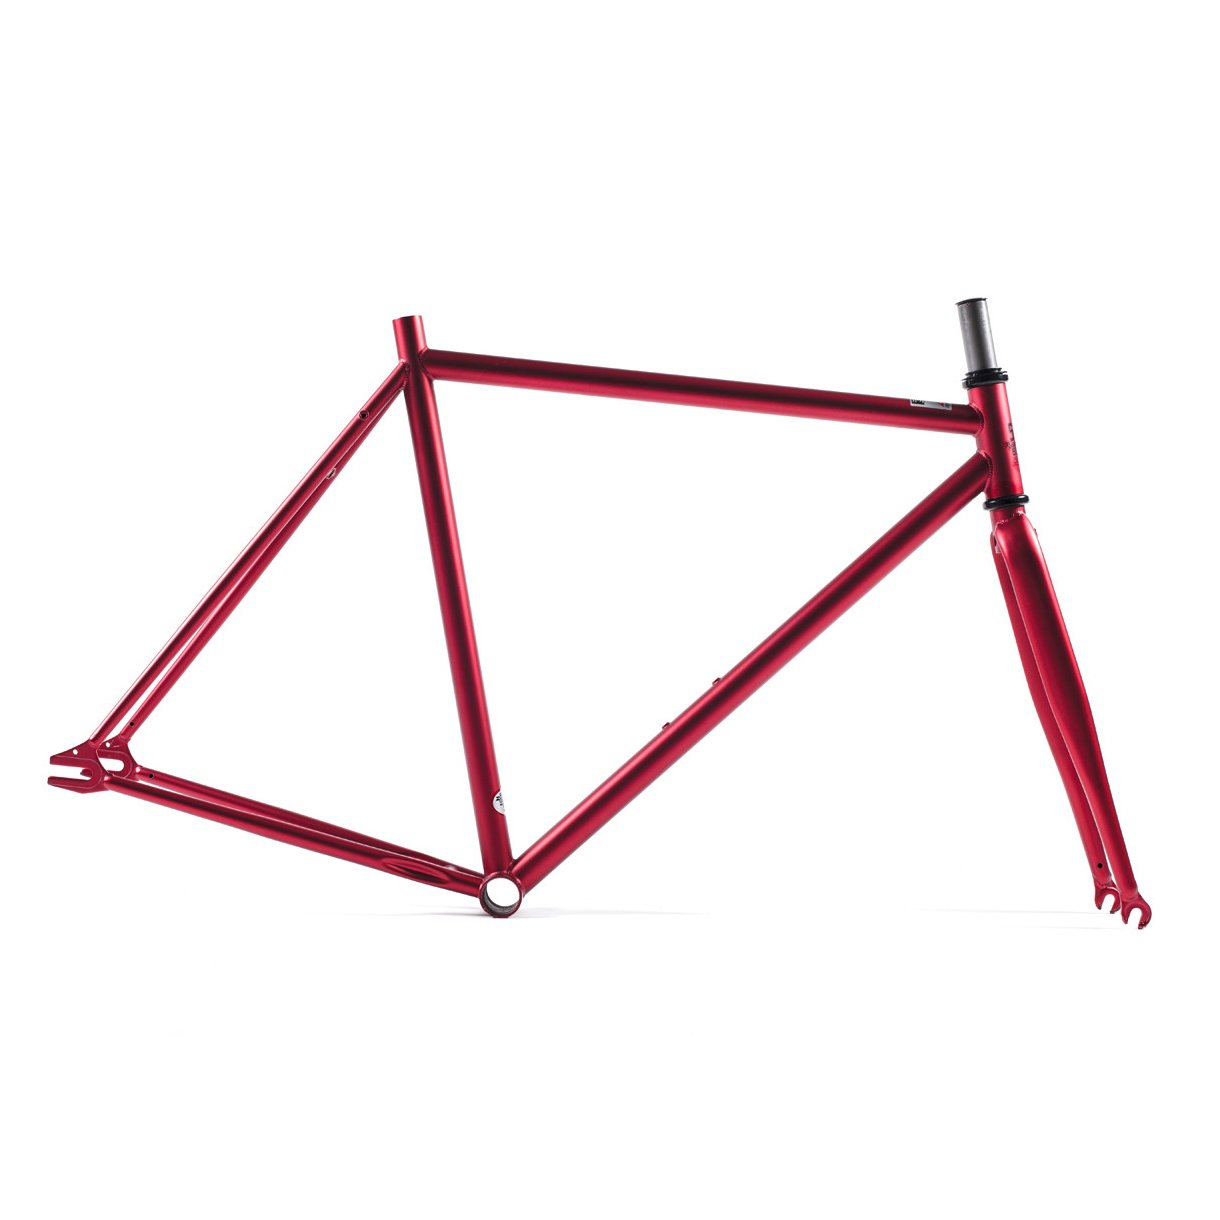 State Bicycle Fixed Gear/Fixie Single Speed Chromalloy Frame and Fork Set, Anode Red, 62cm State Bicycle Co. A730669265808